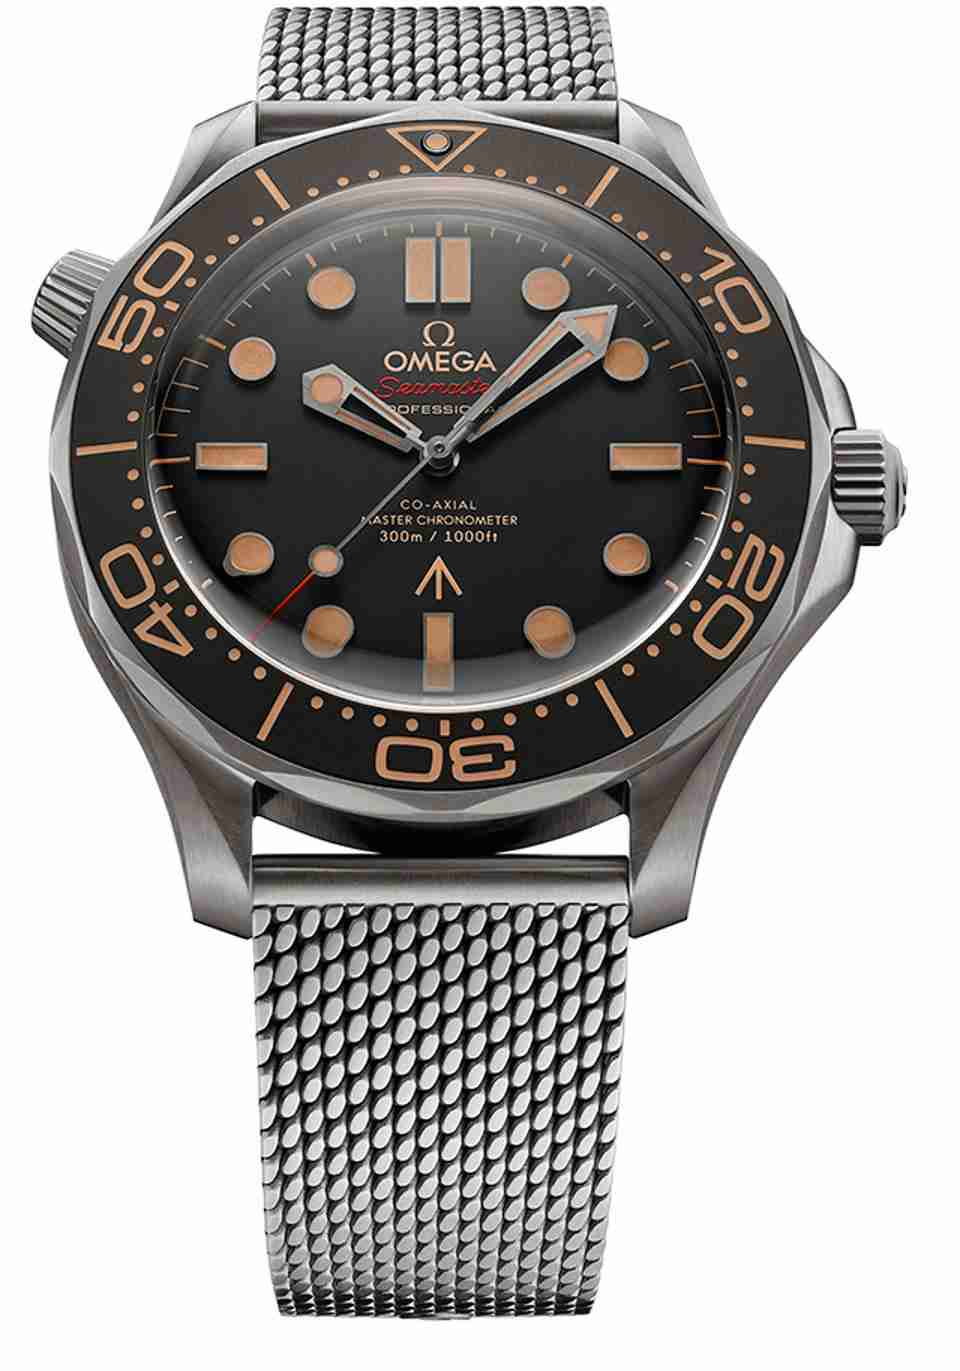 James Bond And His Favorite New Swiss Omega Seamaster Special Edition Replica Watch